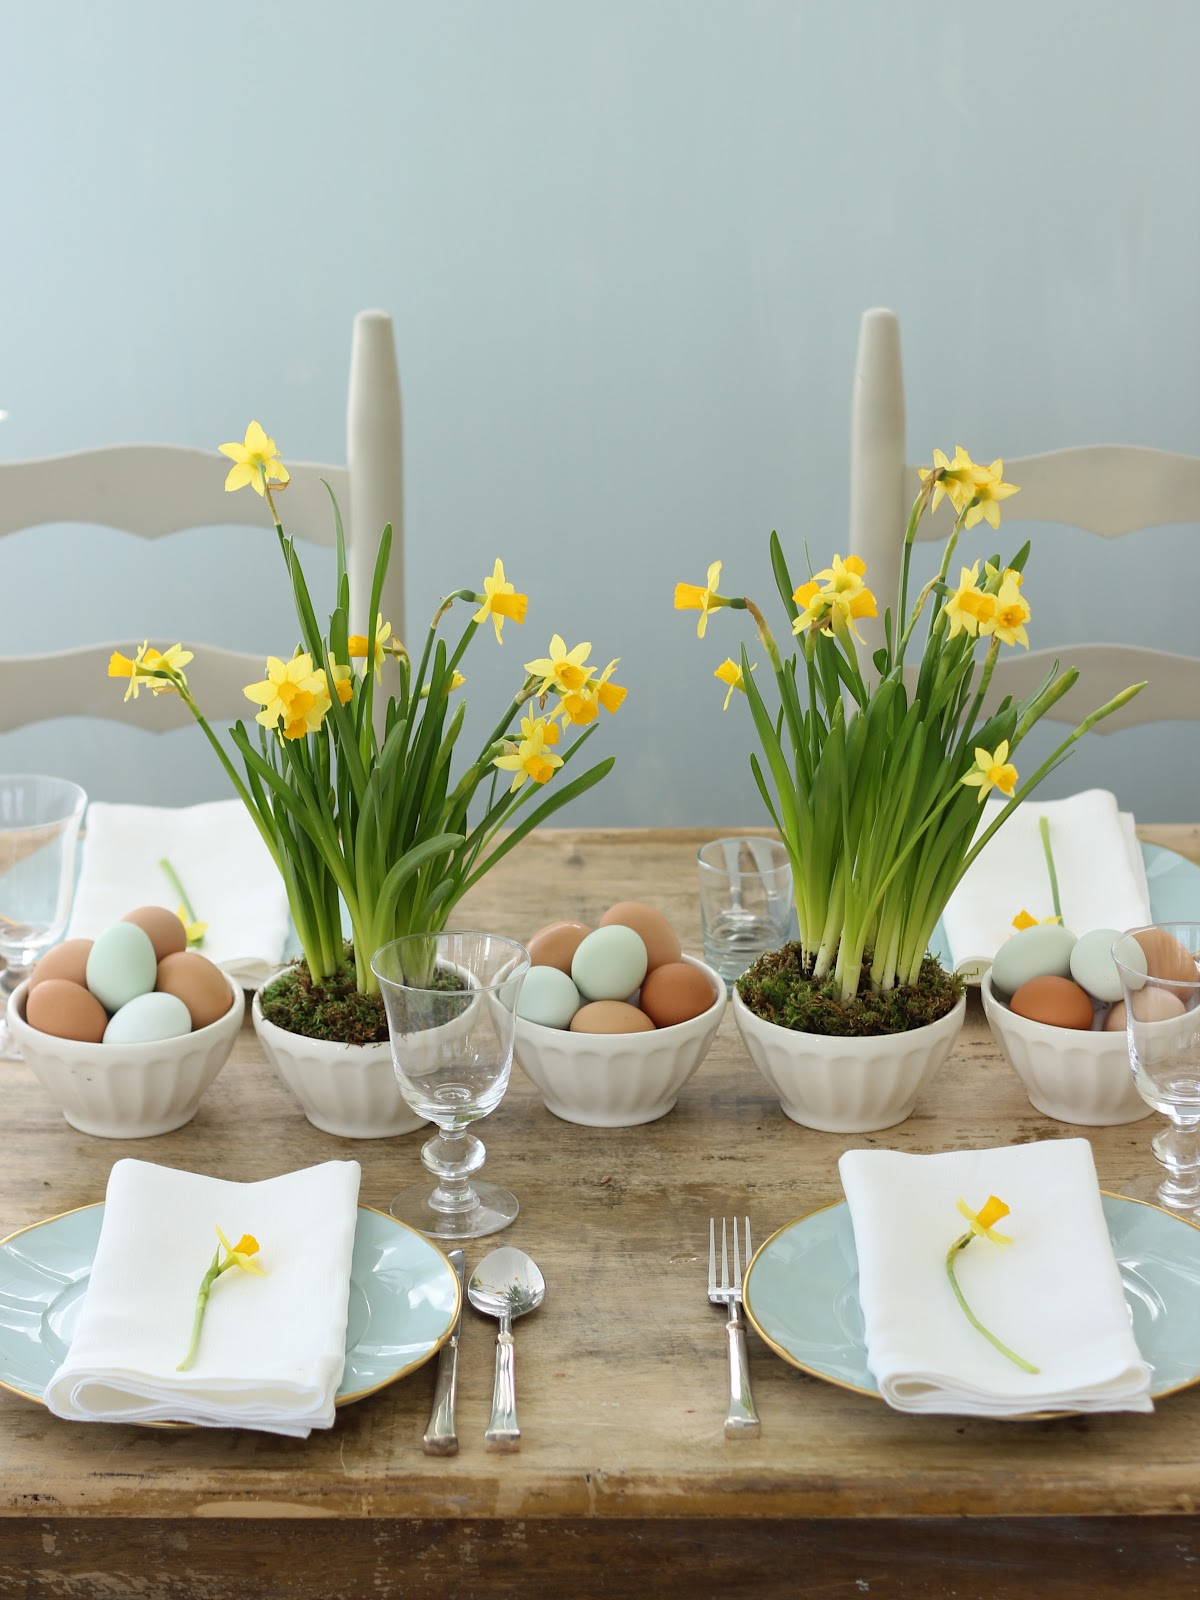 Jenny steffens hobick spring easter centerpieces for Table arrangements